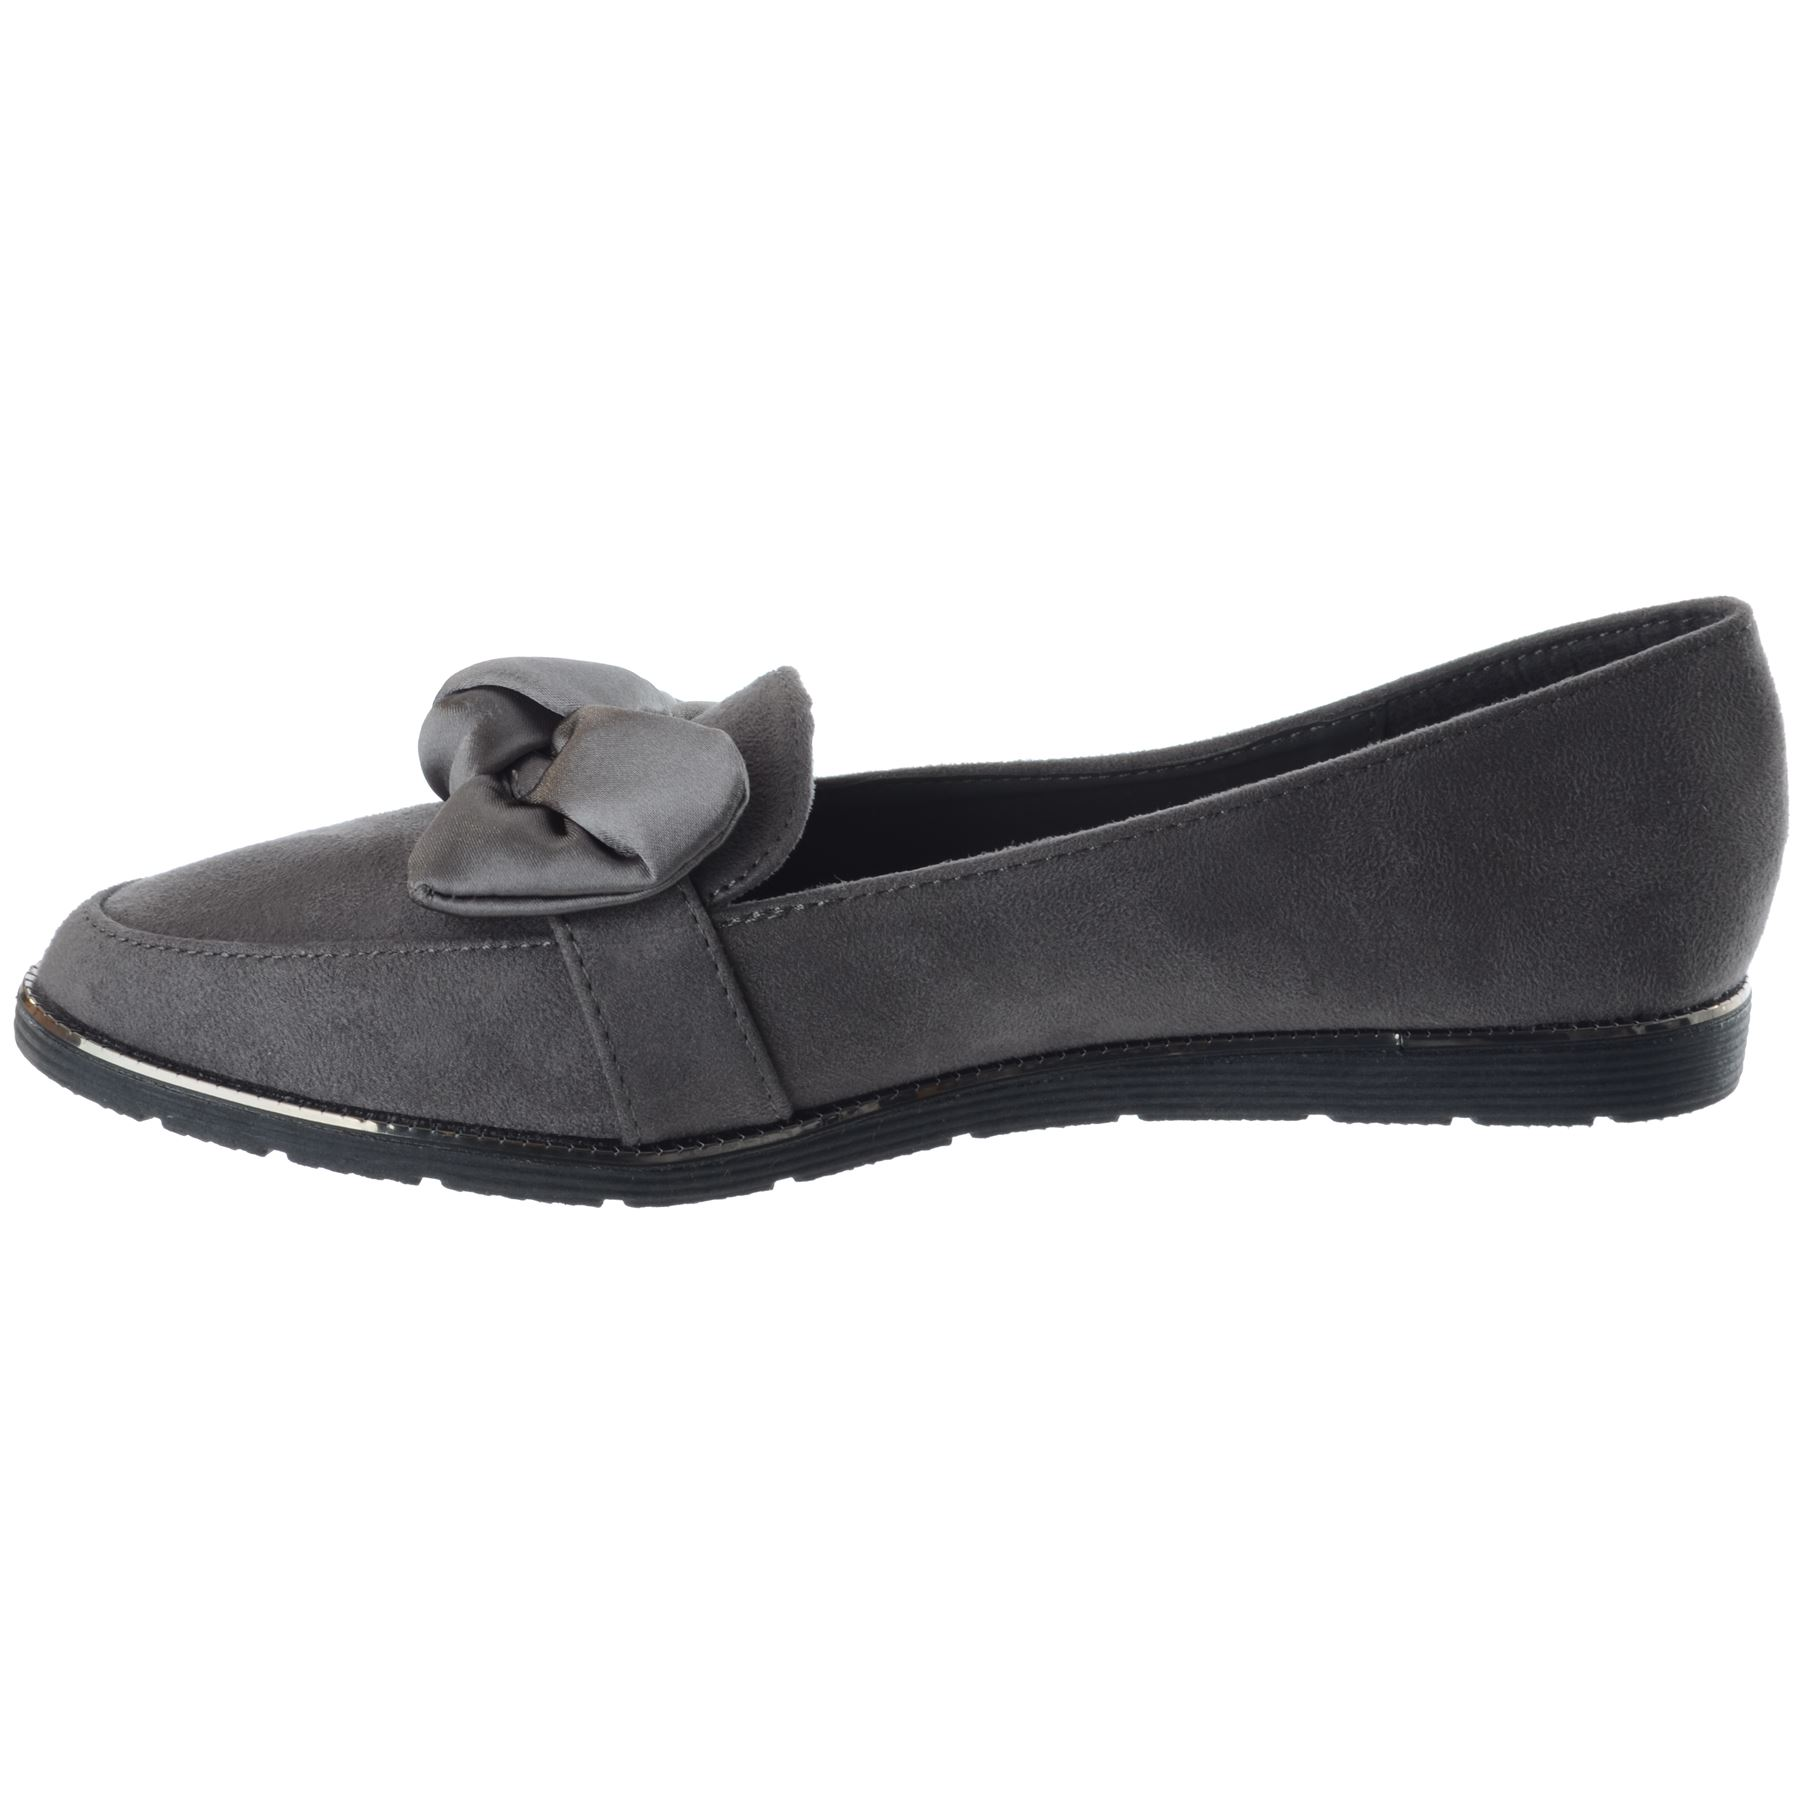 New Womens Ladies Flat Low Heel Work Office Comfy Bow Slip On Loafers Shoes Size